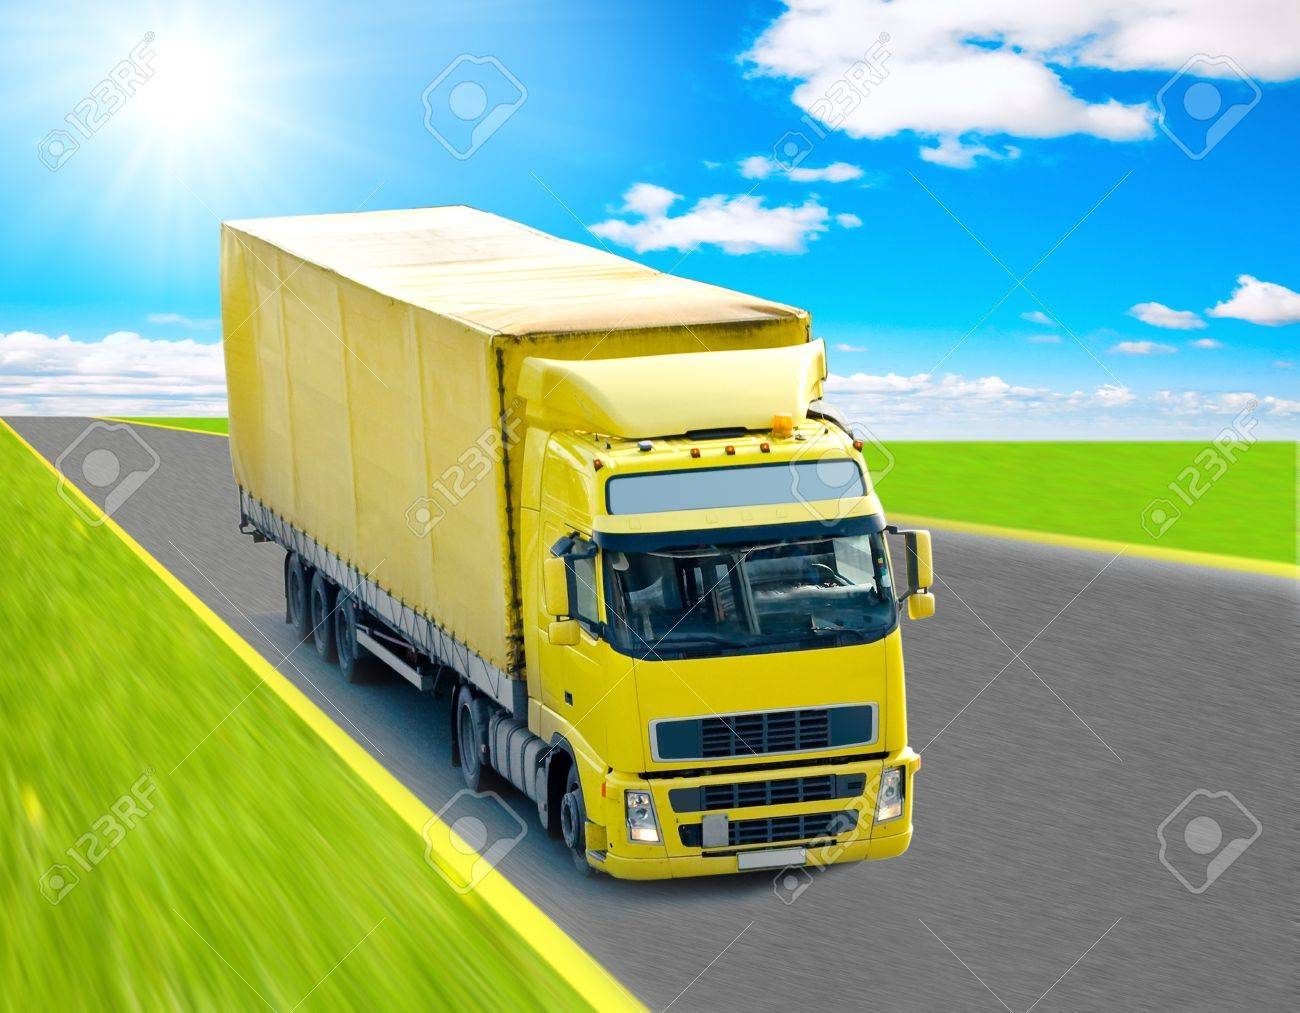 Yellow truck on a highway Stock Photo - 10078035